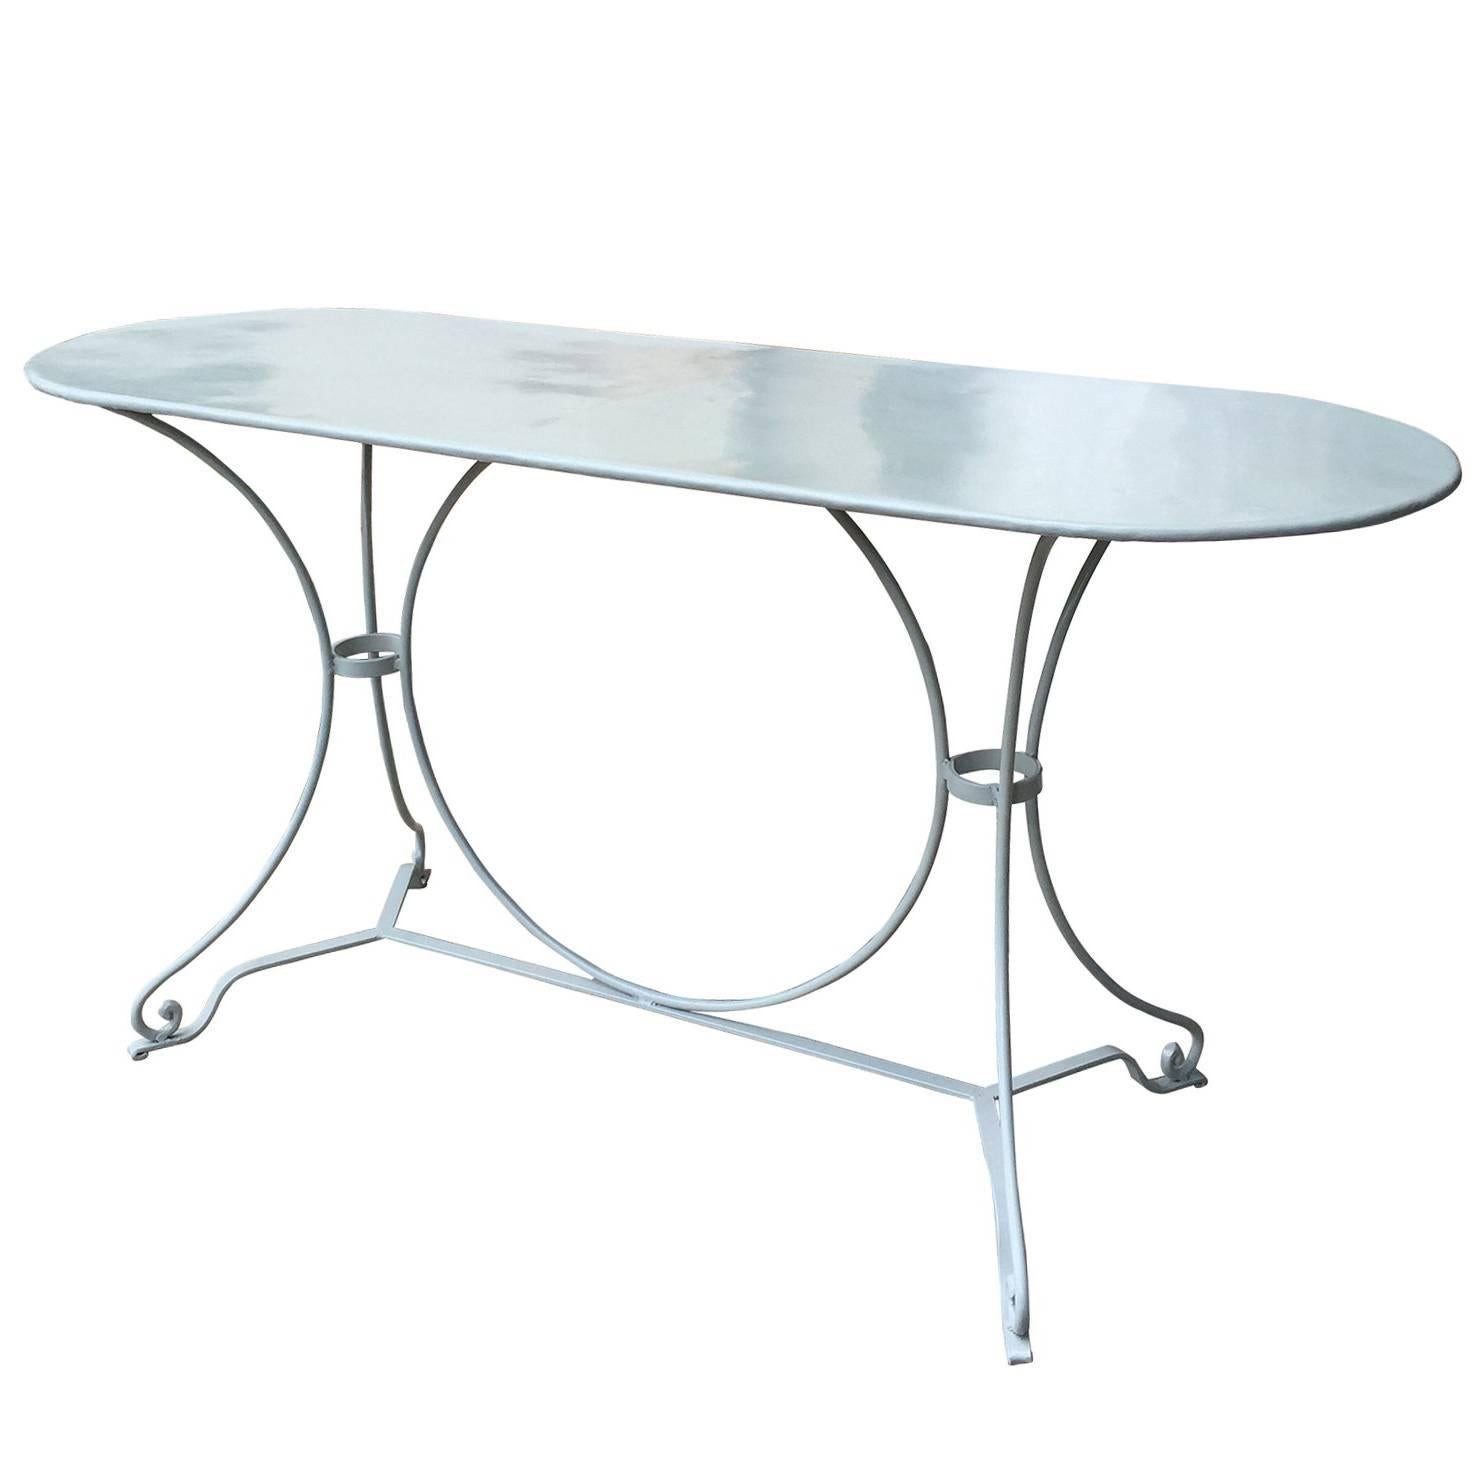 20th Century French Garden Table, Custom Painted